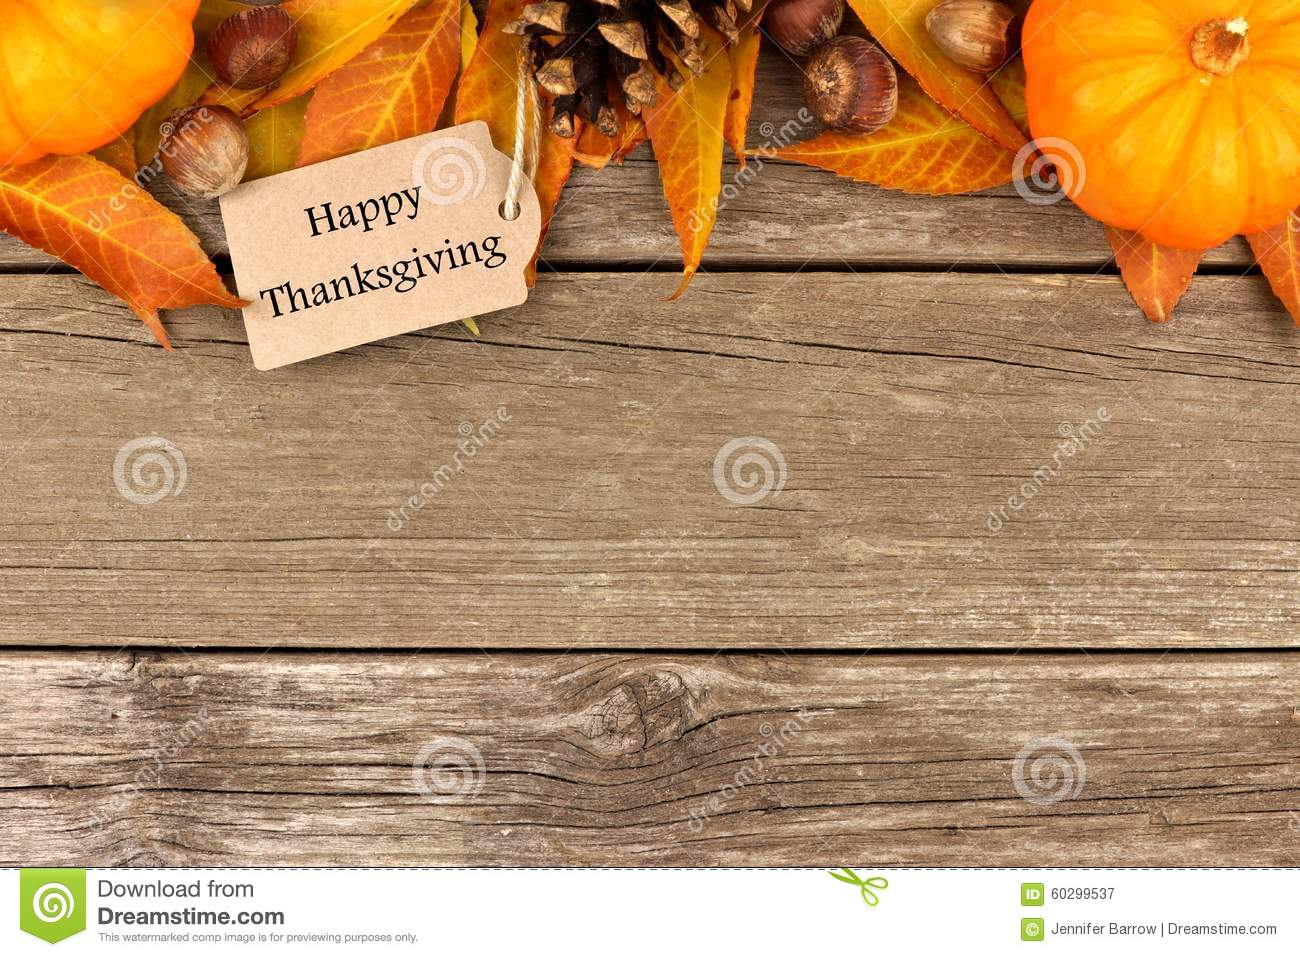 Fall Leaves And Pumpkins Wallpaper Happy Thanksgiving Tag With Autumn Top Border On Rustic